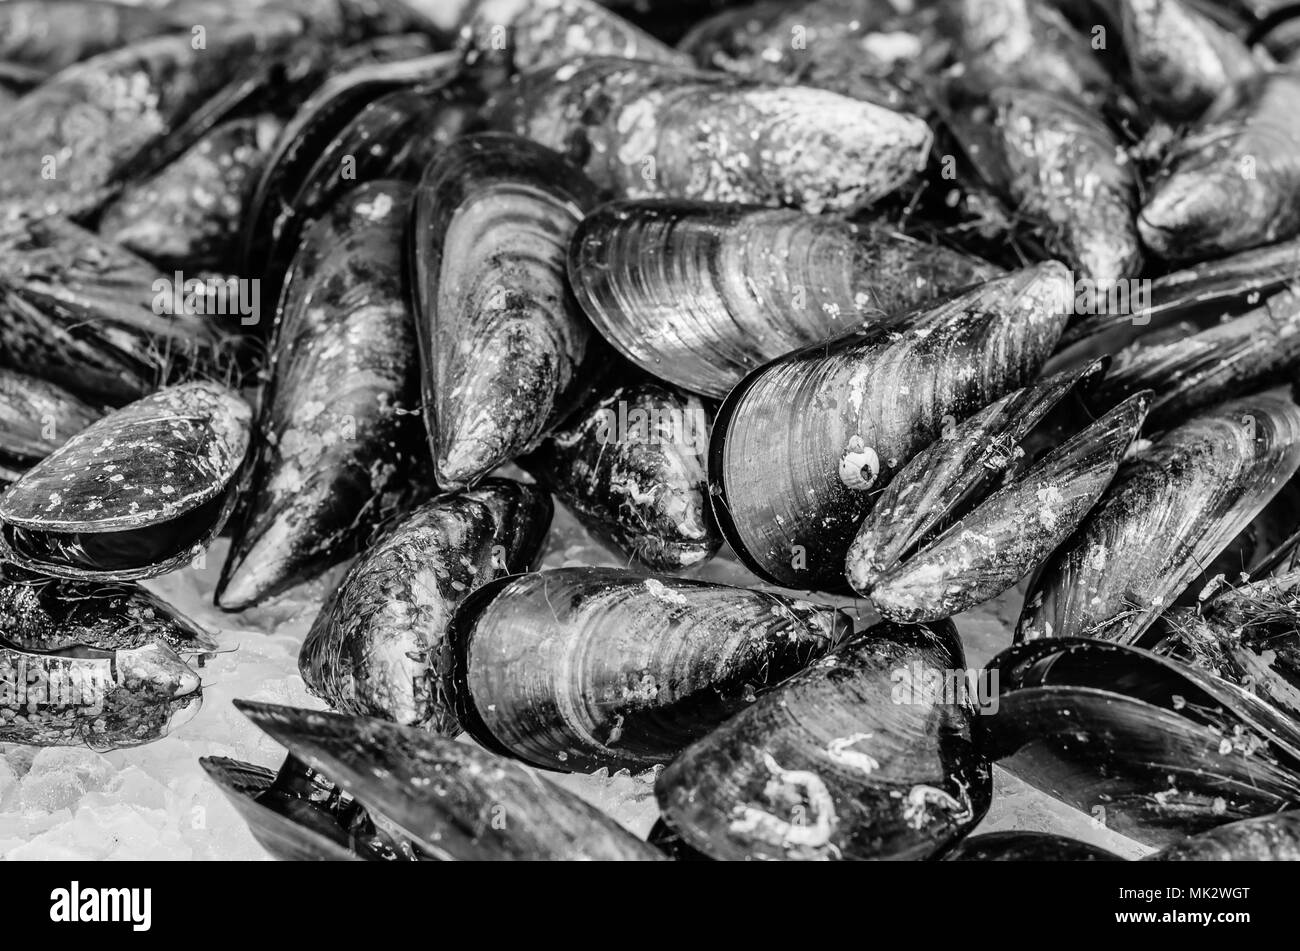 Fresh mussels in a seafood stand in the market - Stock Image